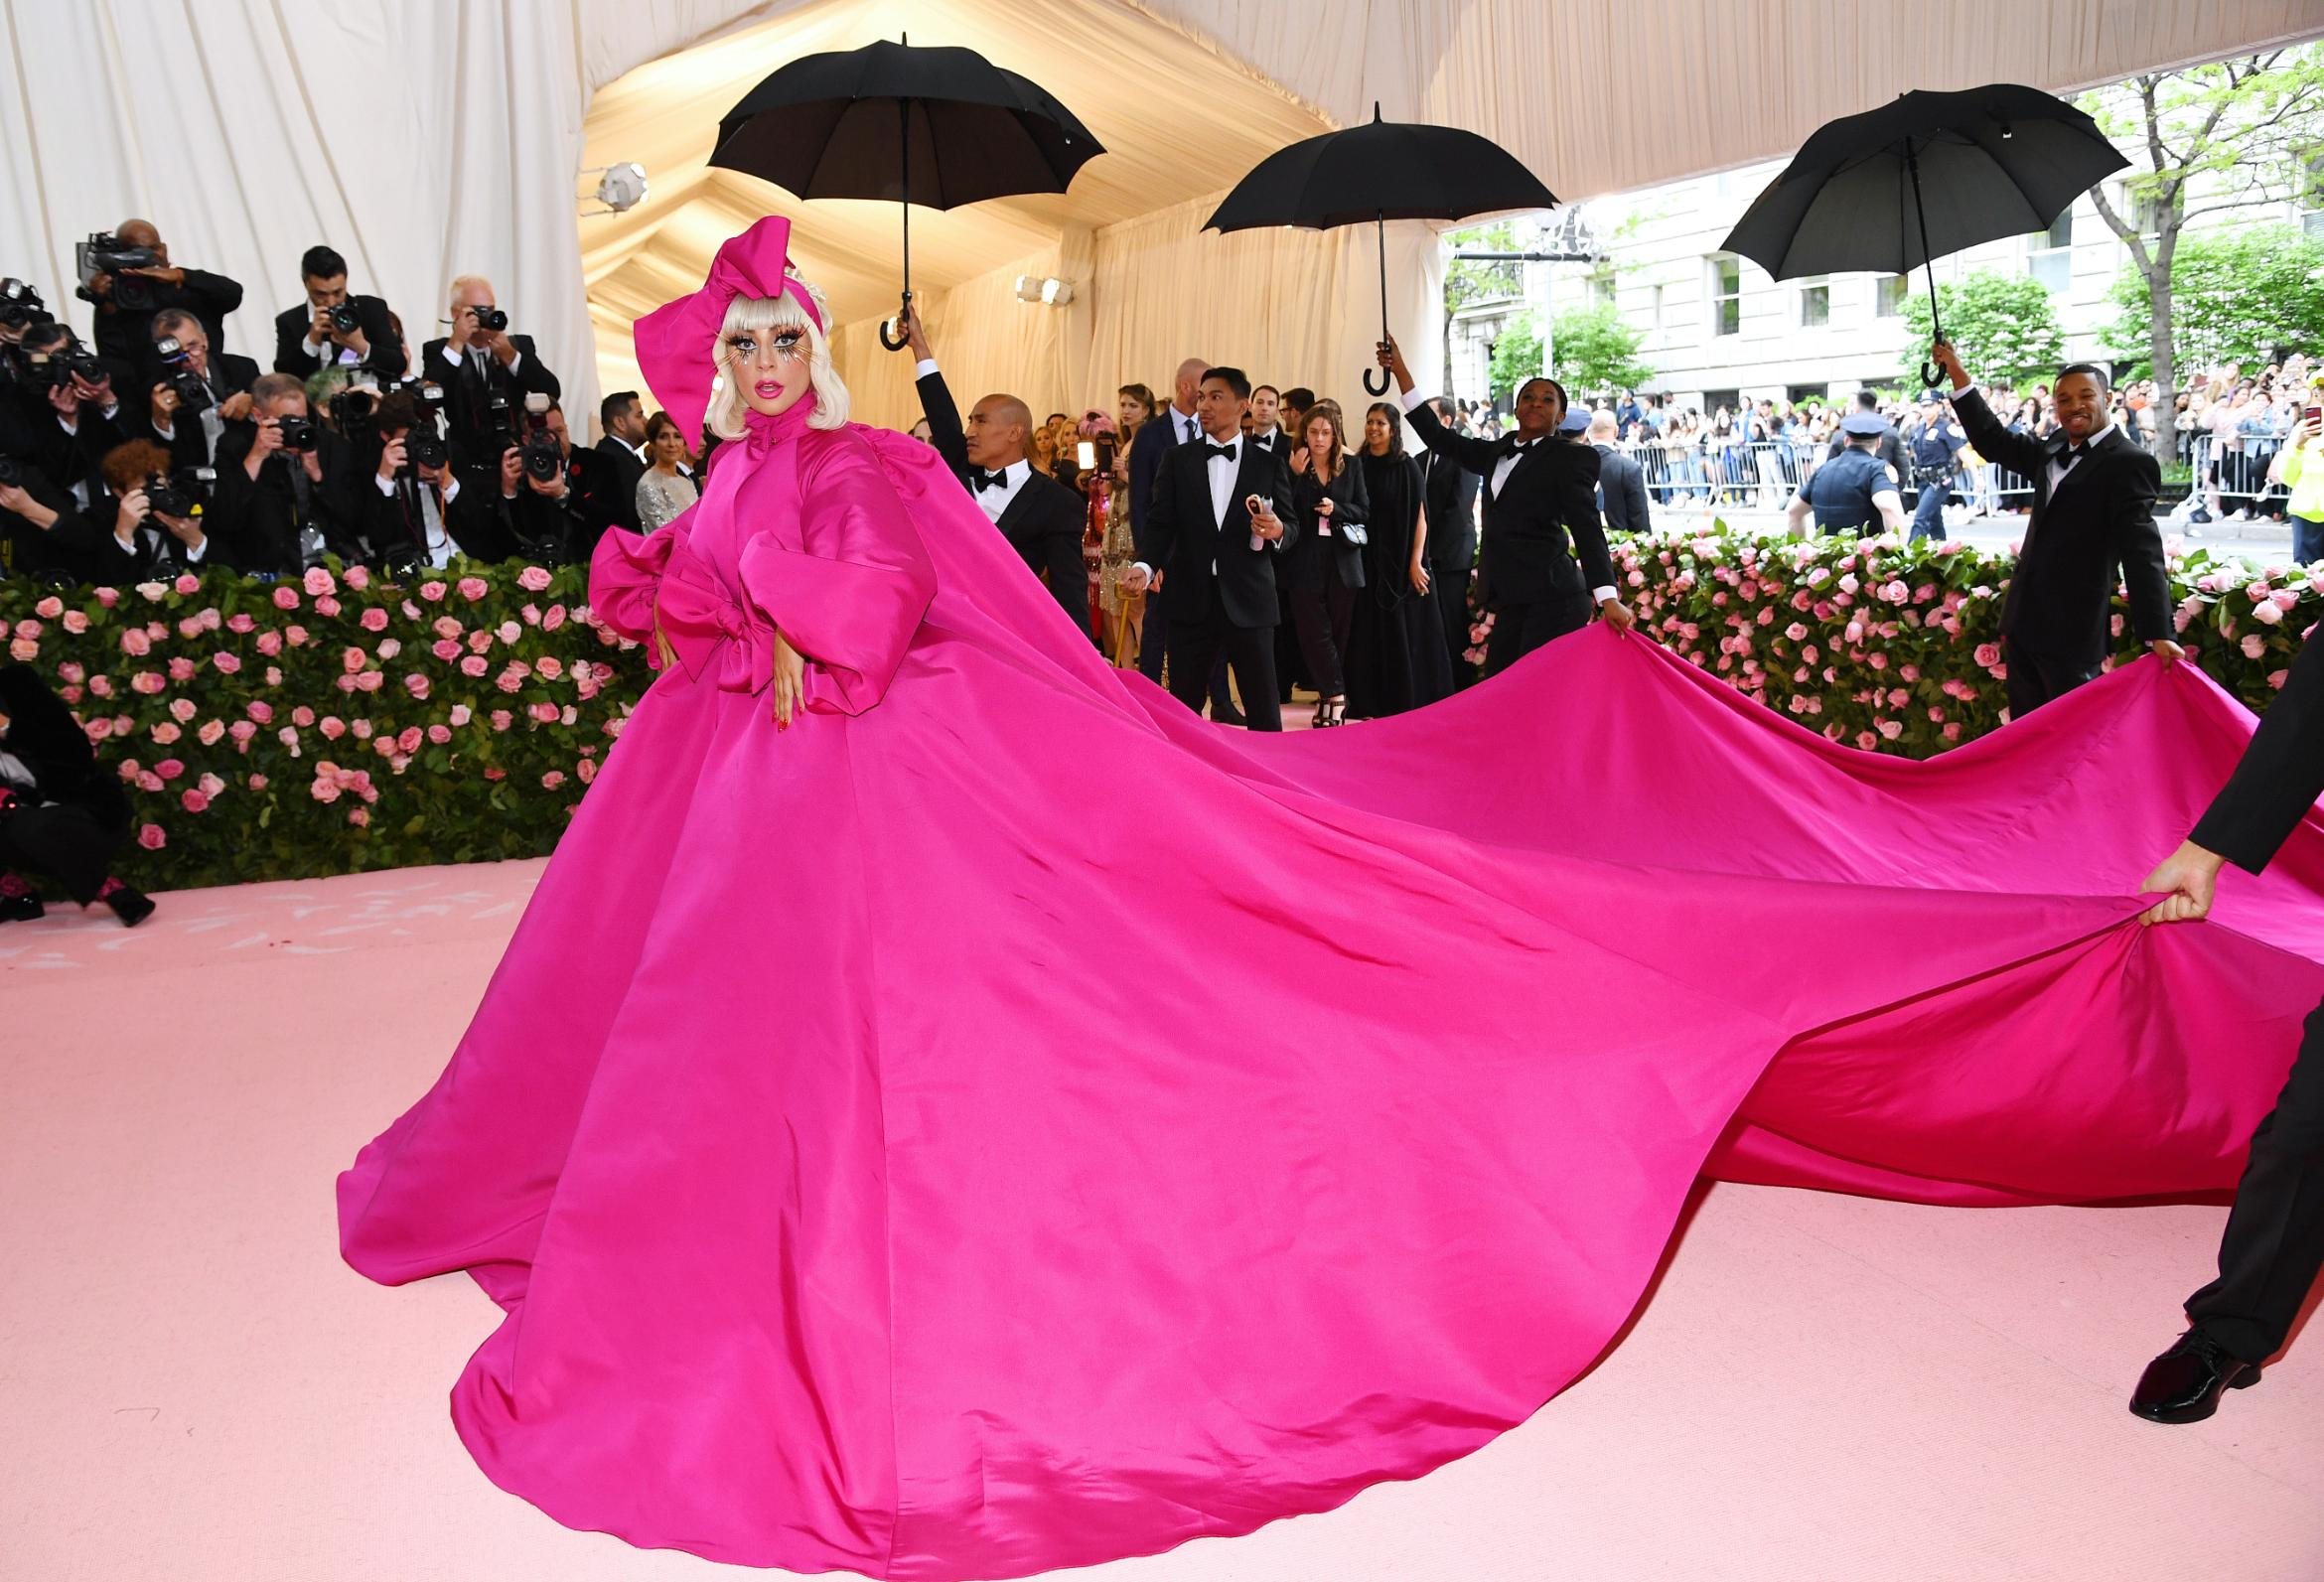 Best Met Gala Looks of All Time - Met Gala History Lady Gaga Harry Styles Rihanna Beyonce